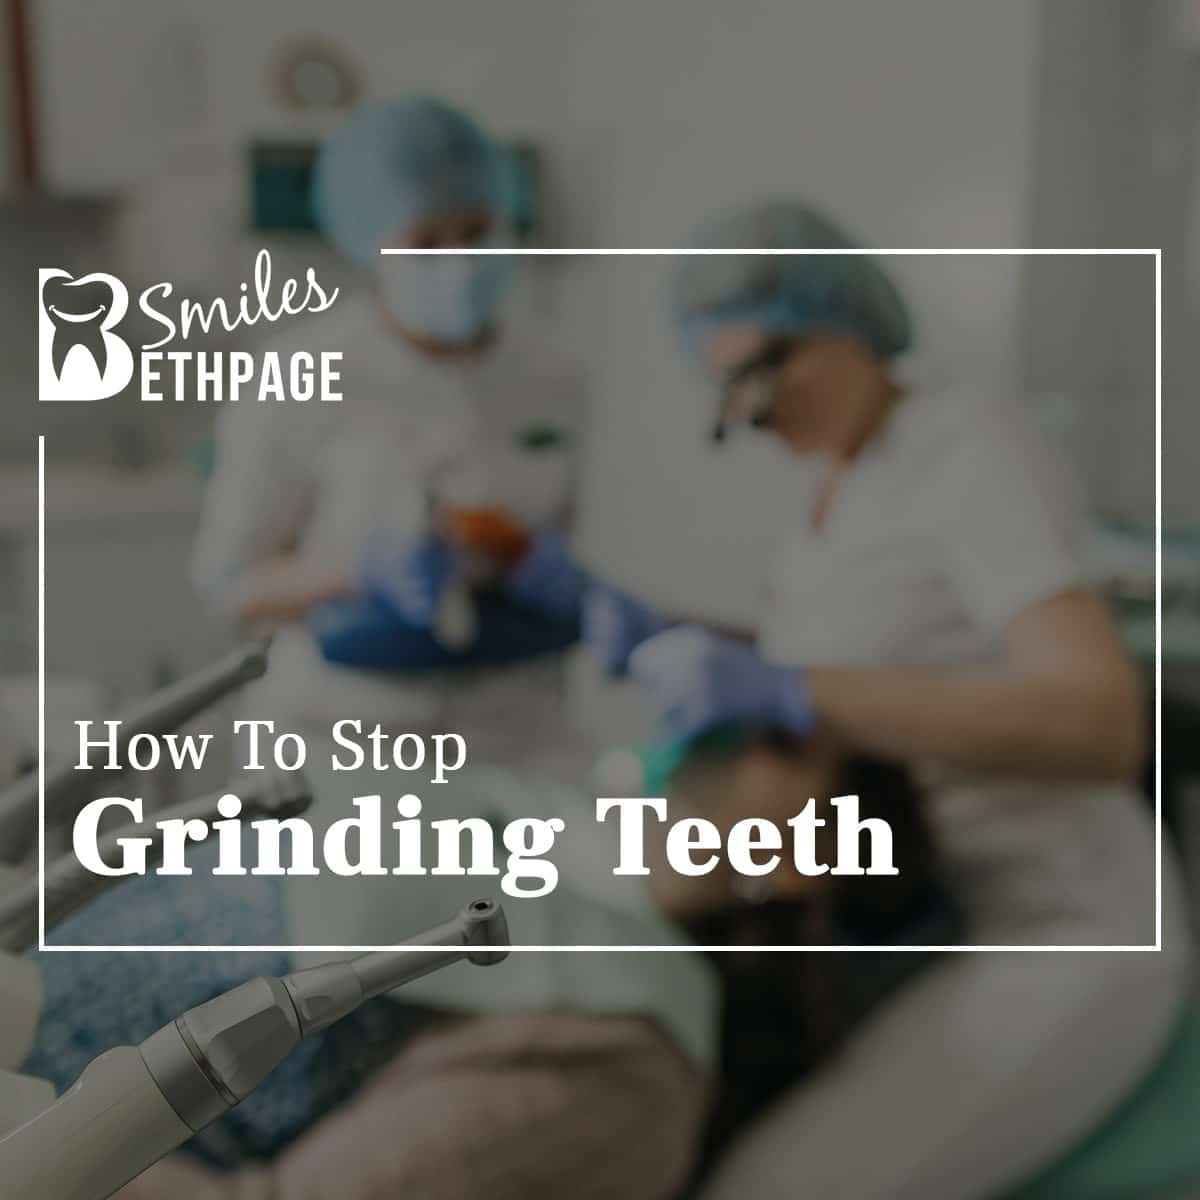 How To Stop Grinding Teeth